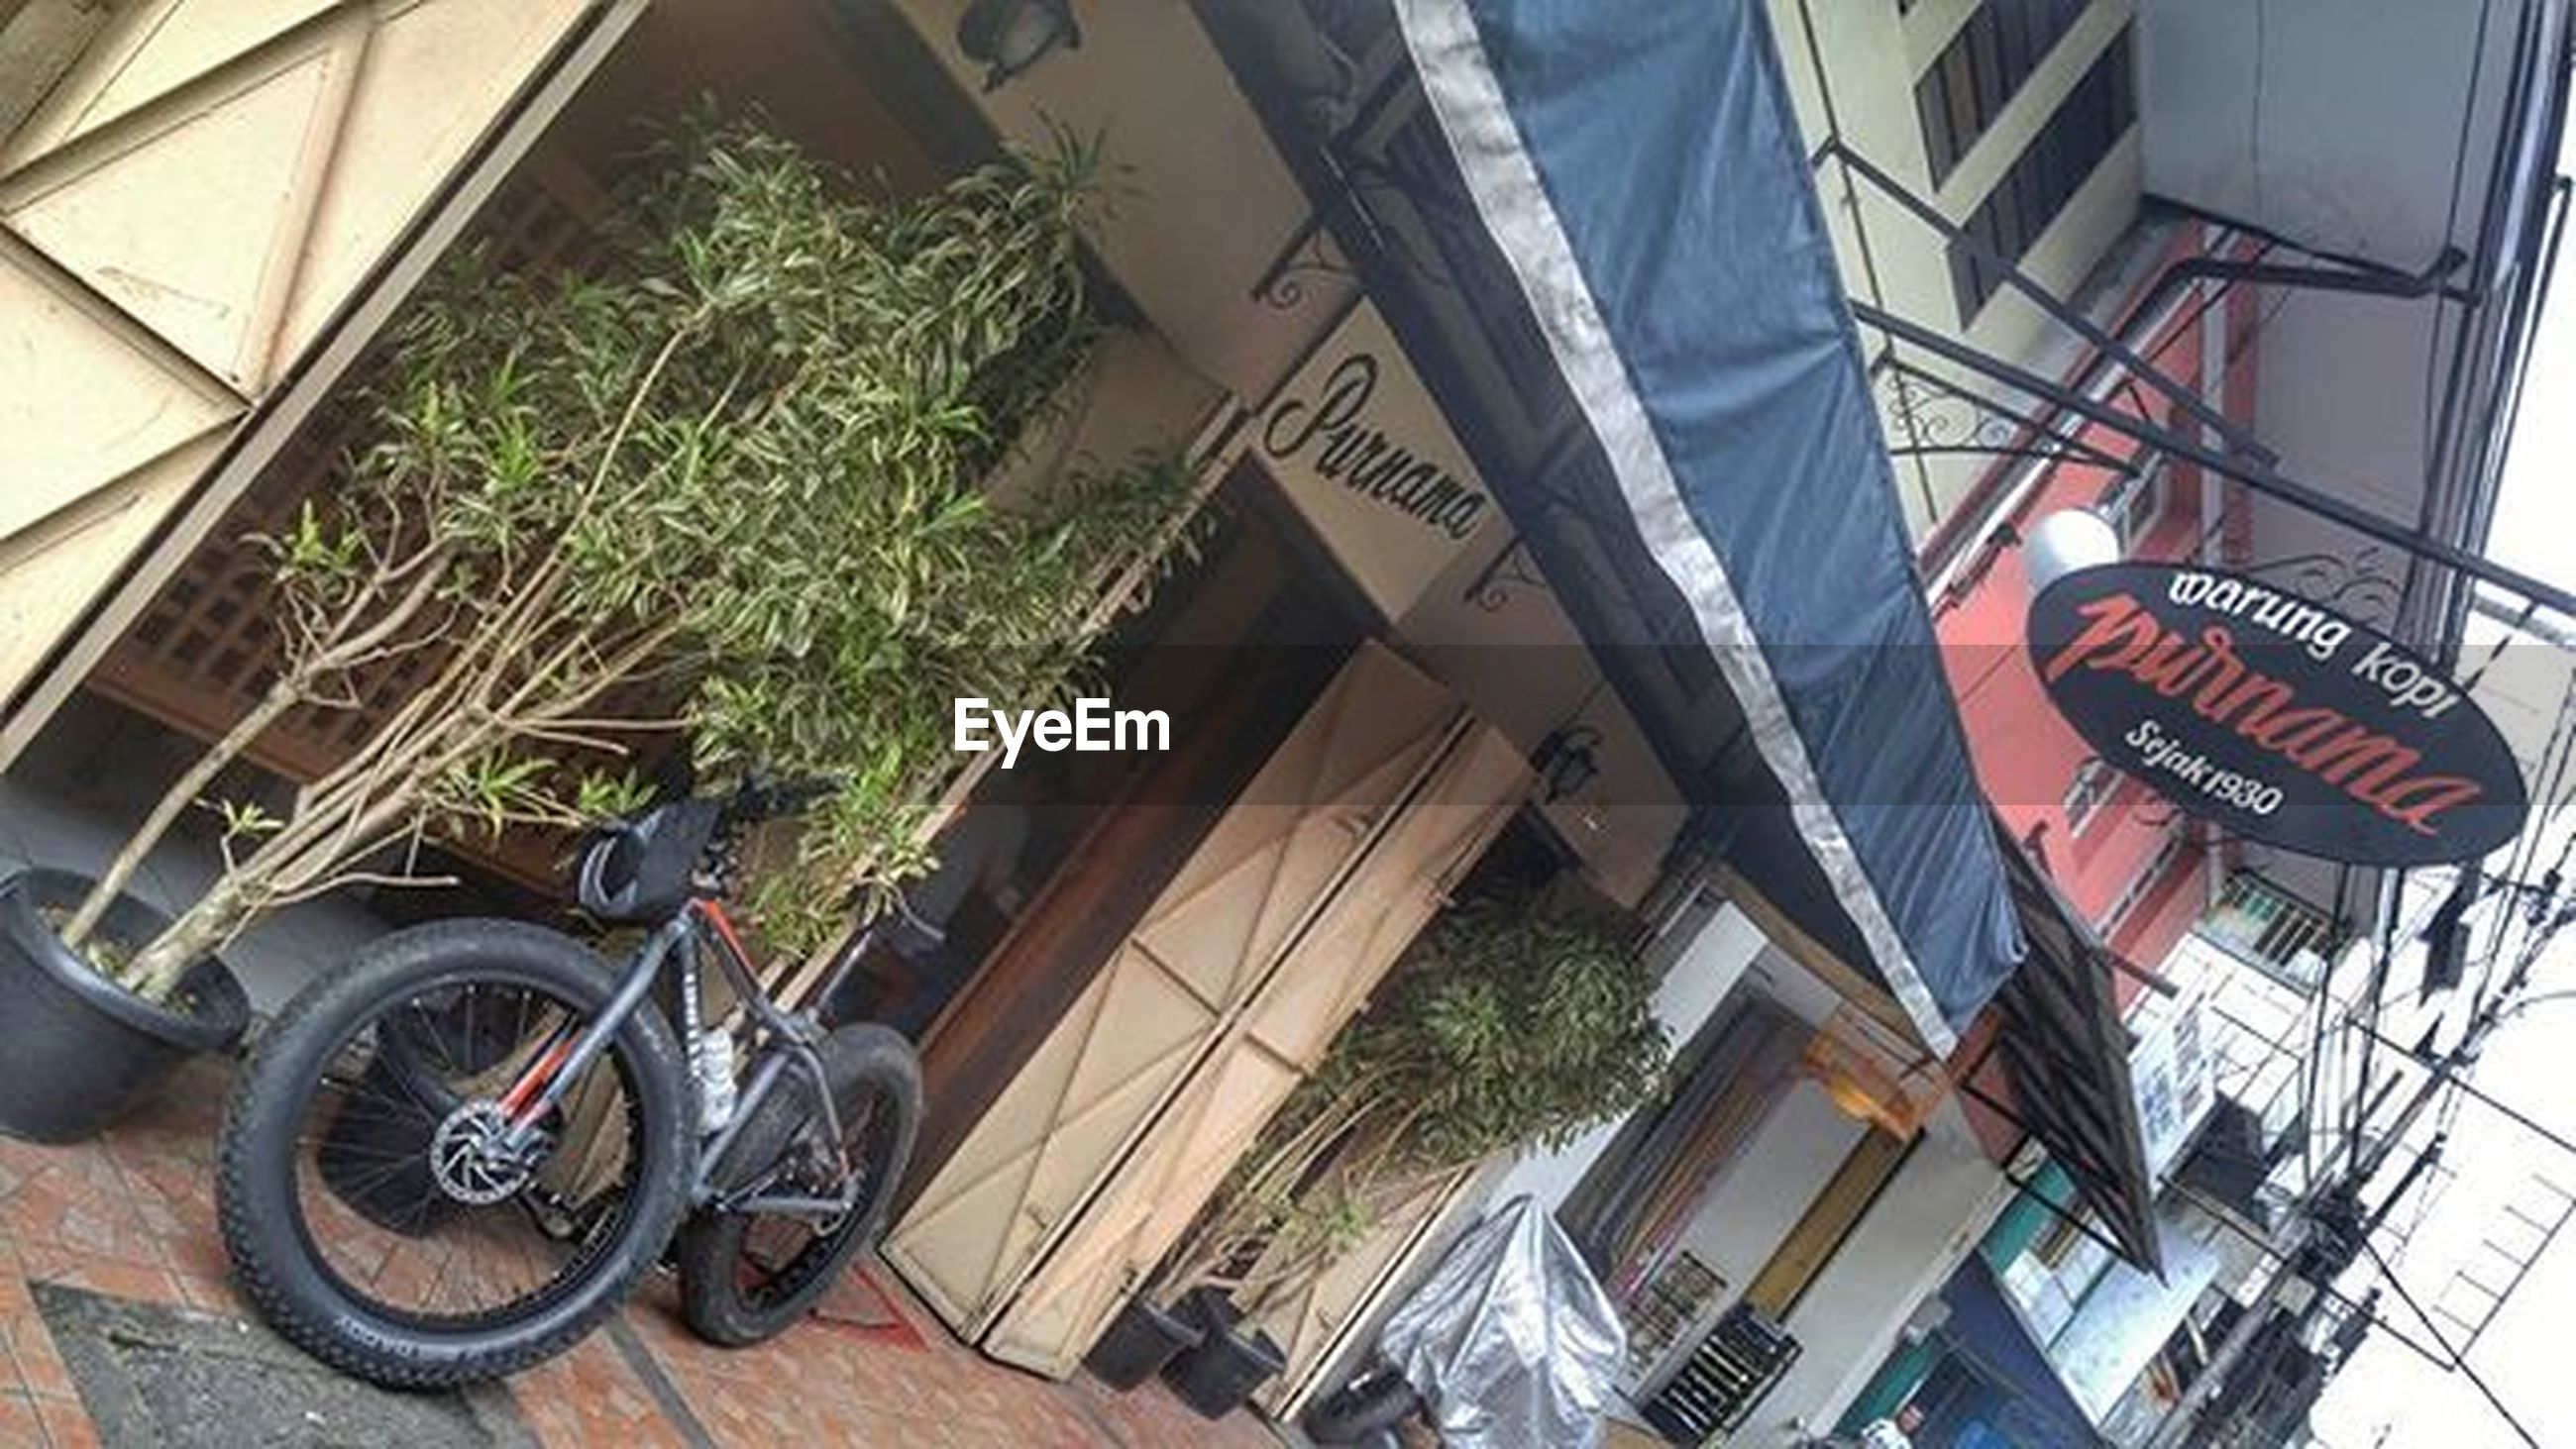 building exterior, architecture, land vehicle, bicycle, built structure, transportation, mode of transport, parking, stationary, parked, day, outdoors, street, no people, city, residential building, car, residential structure, plant, house